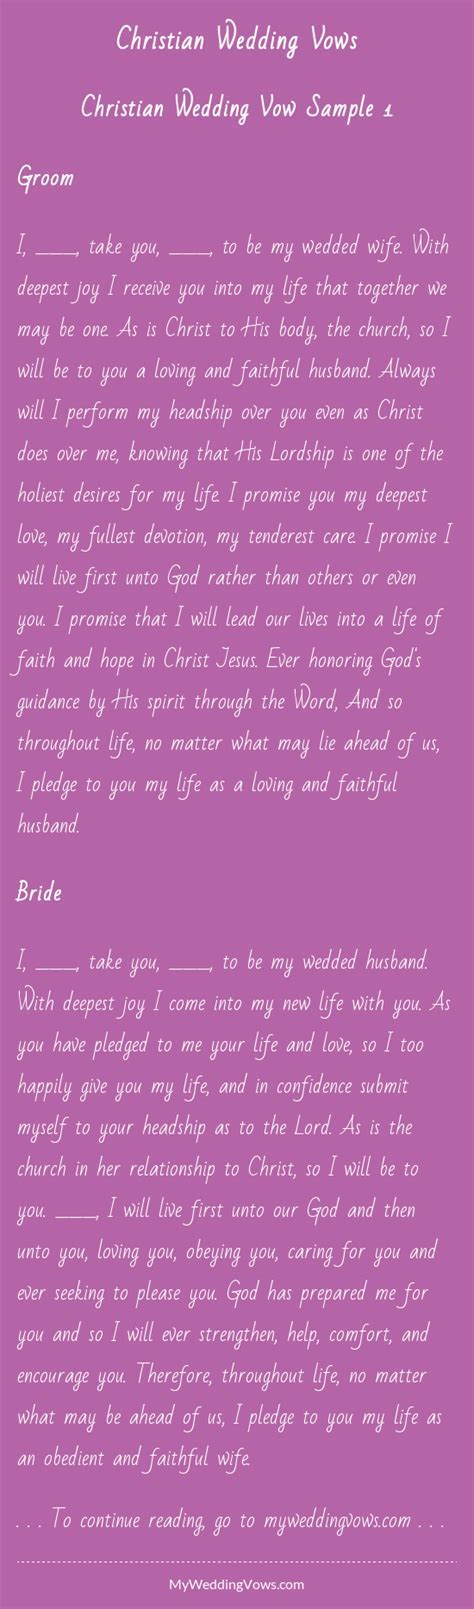 Christian Wedding Vows   Christian wedding vows, Wedding